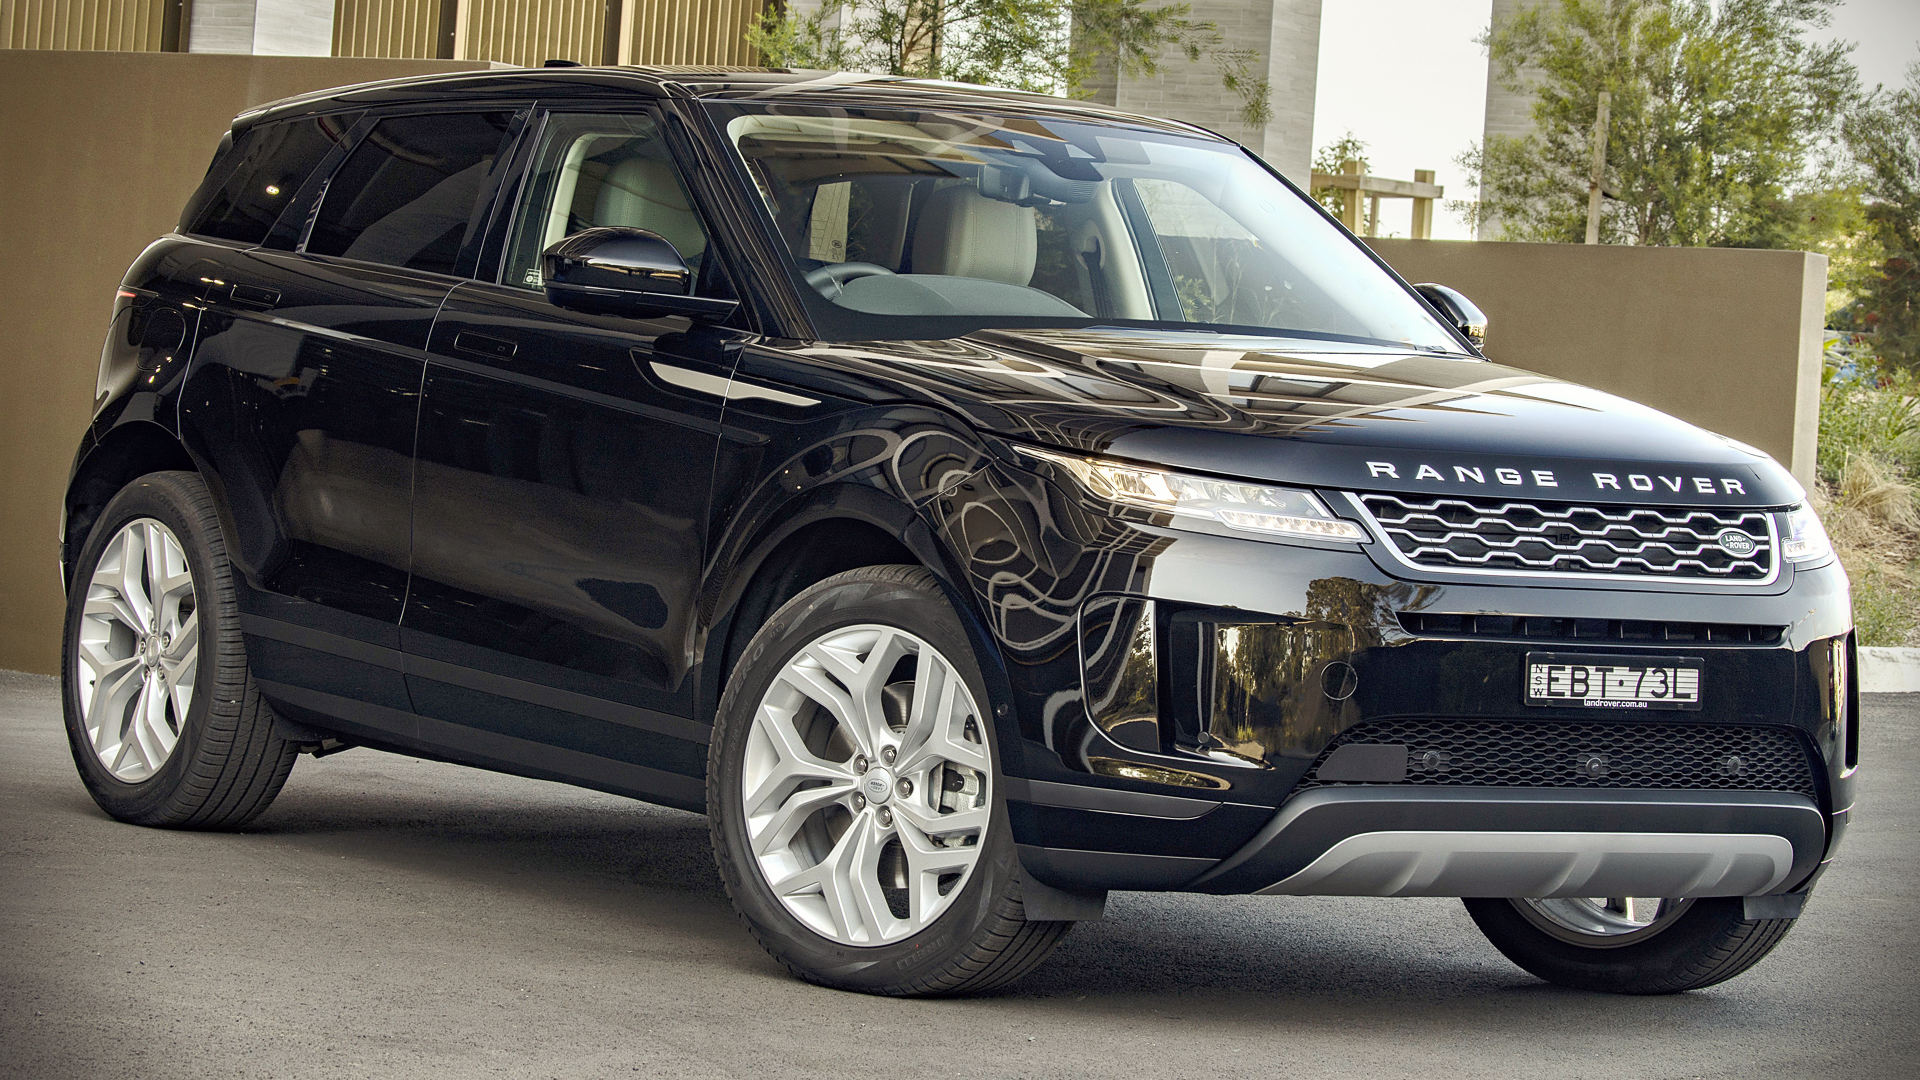 Range Rover Evoque 2020 Black Wallpaper